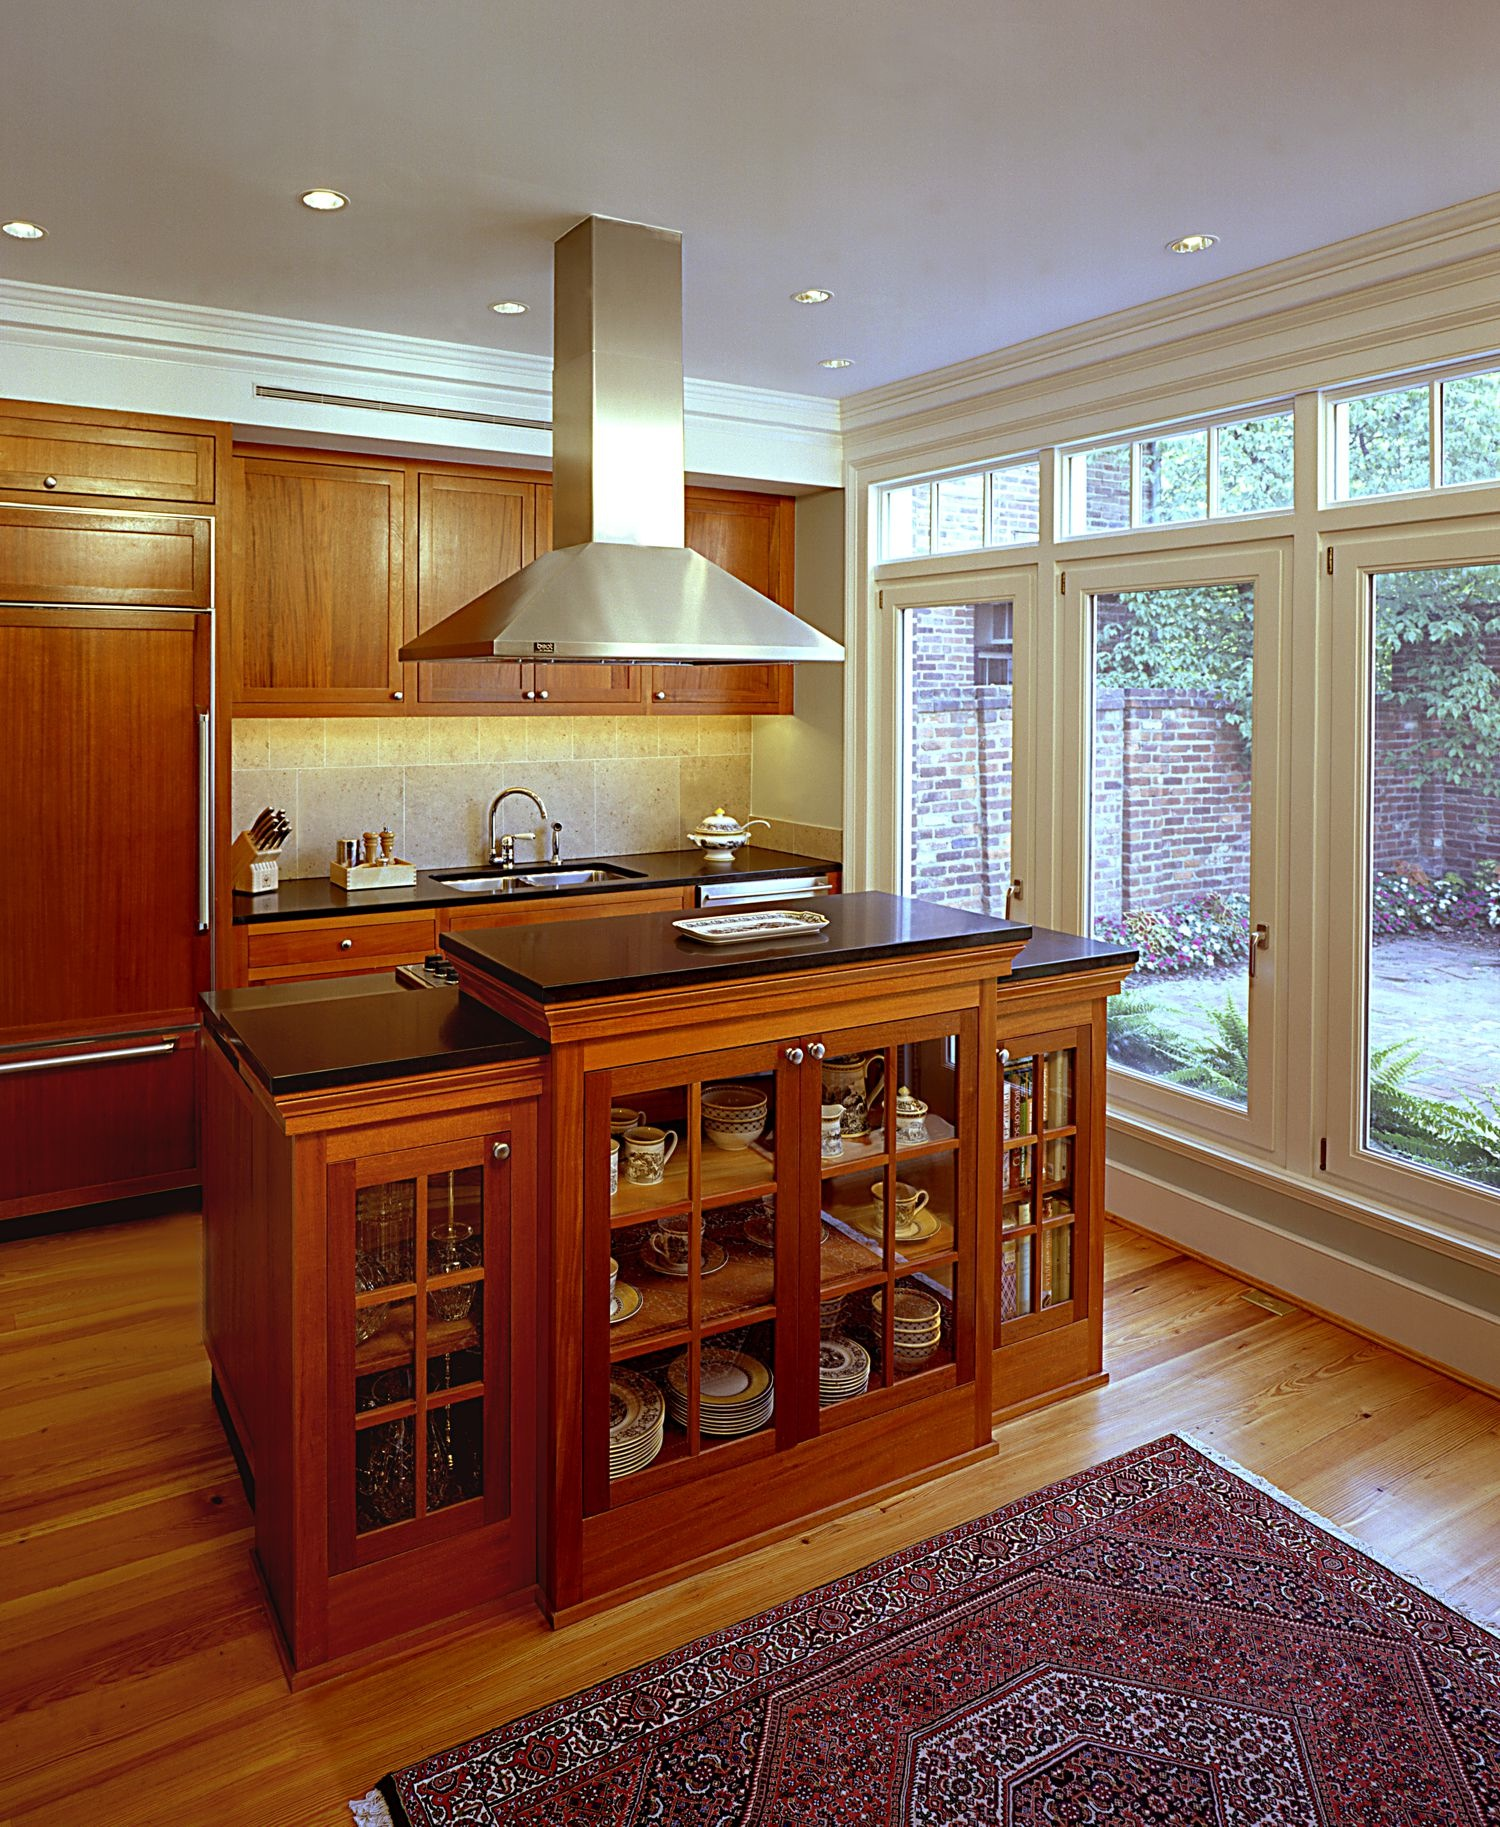 Kitchen Cabinets Alexandria Va: Alexandria VA Historical Renovation